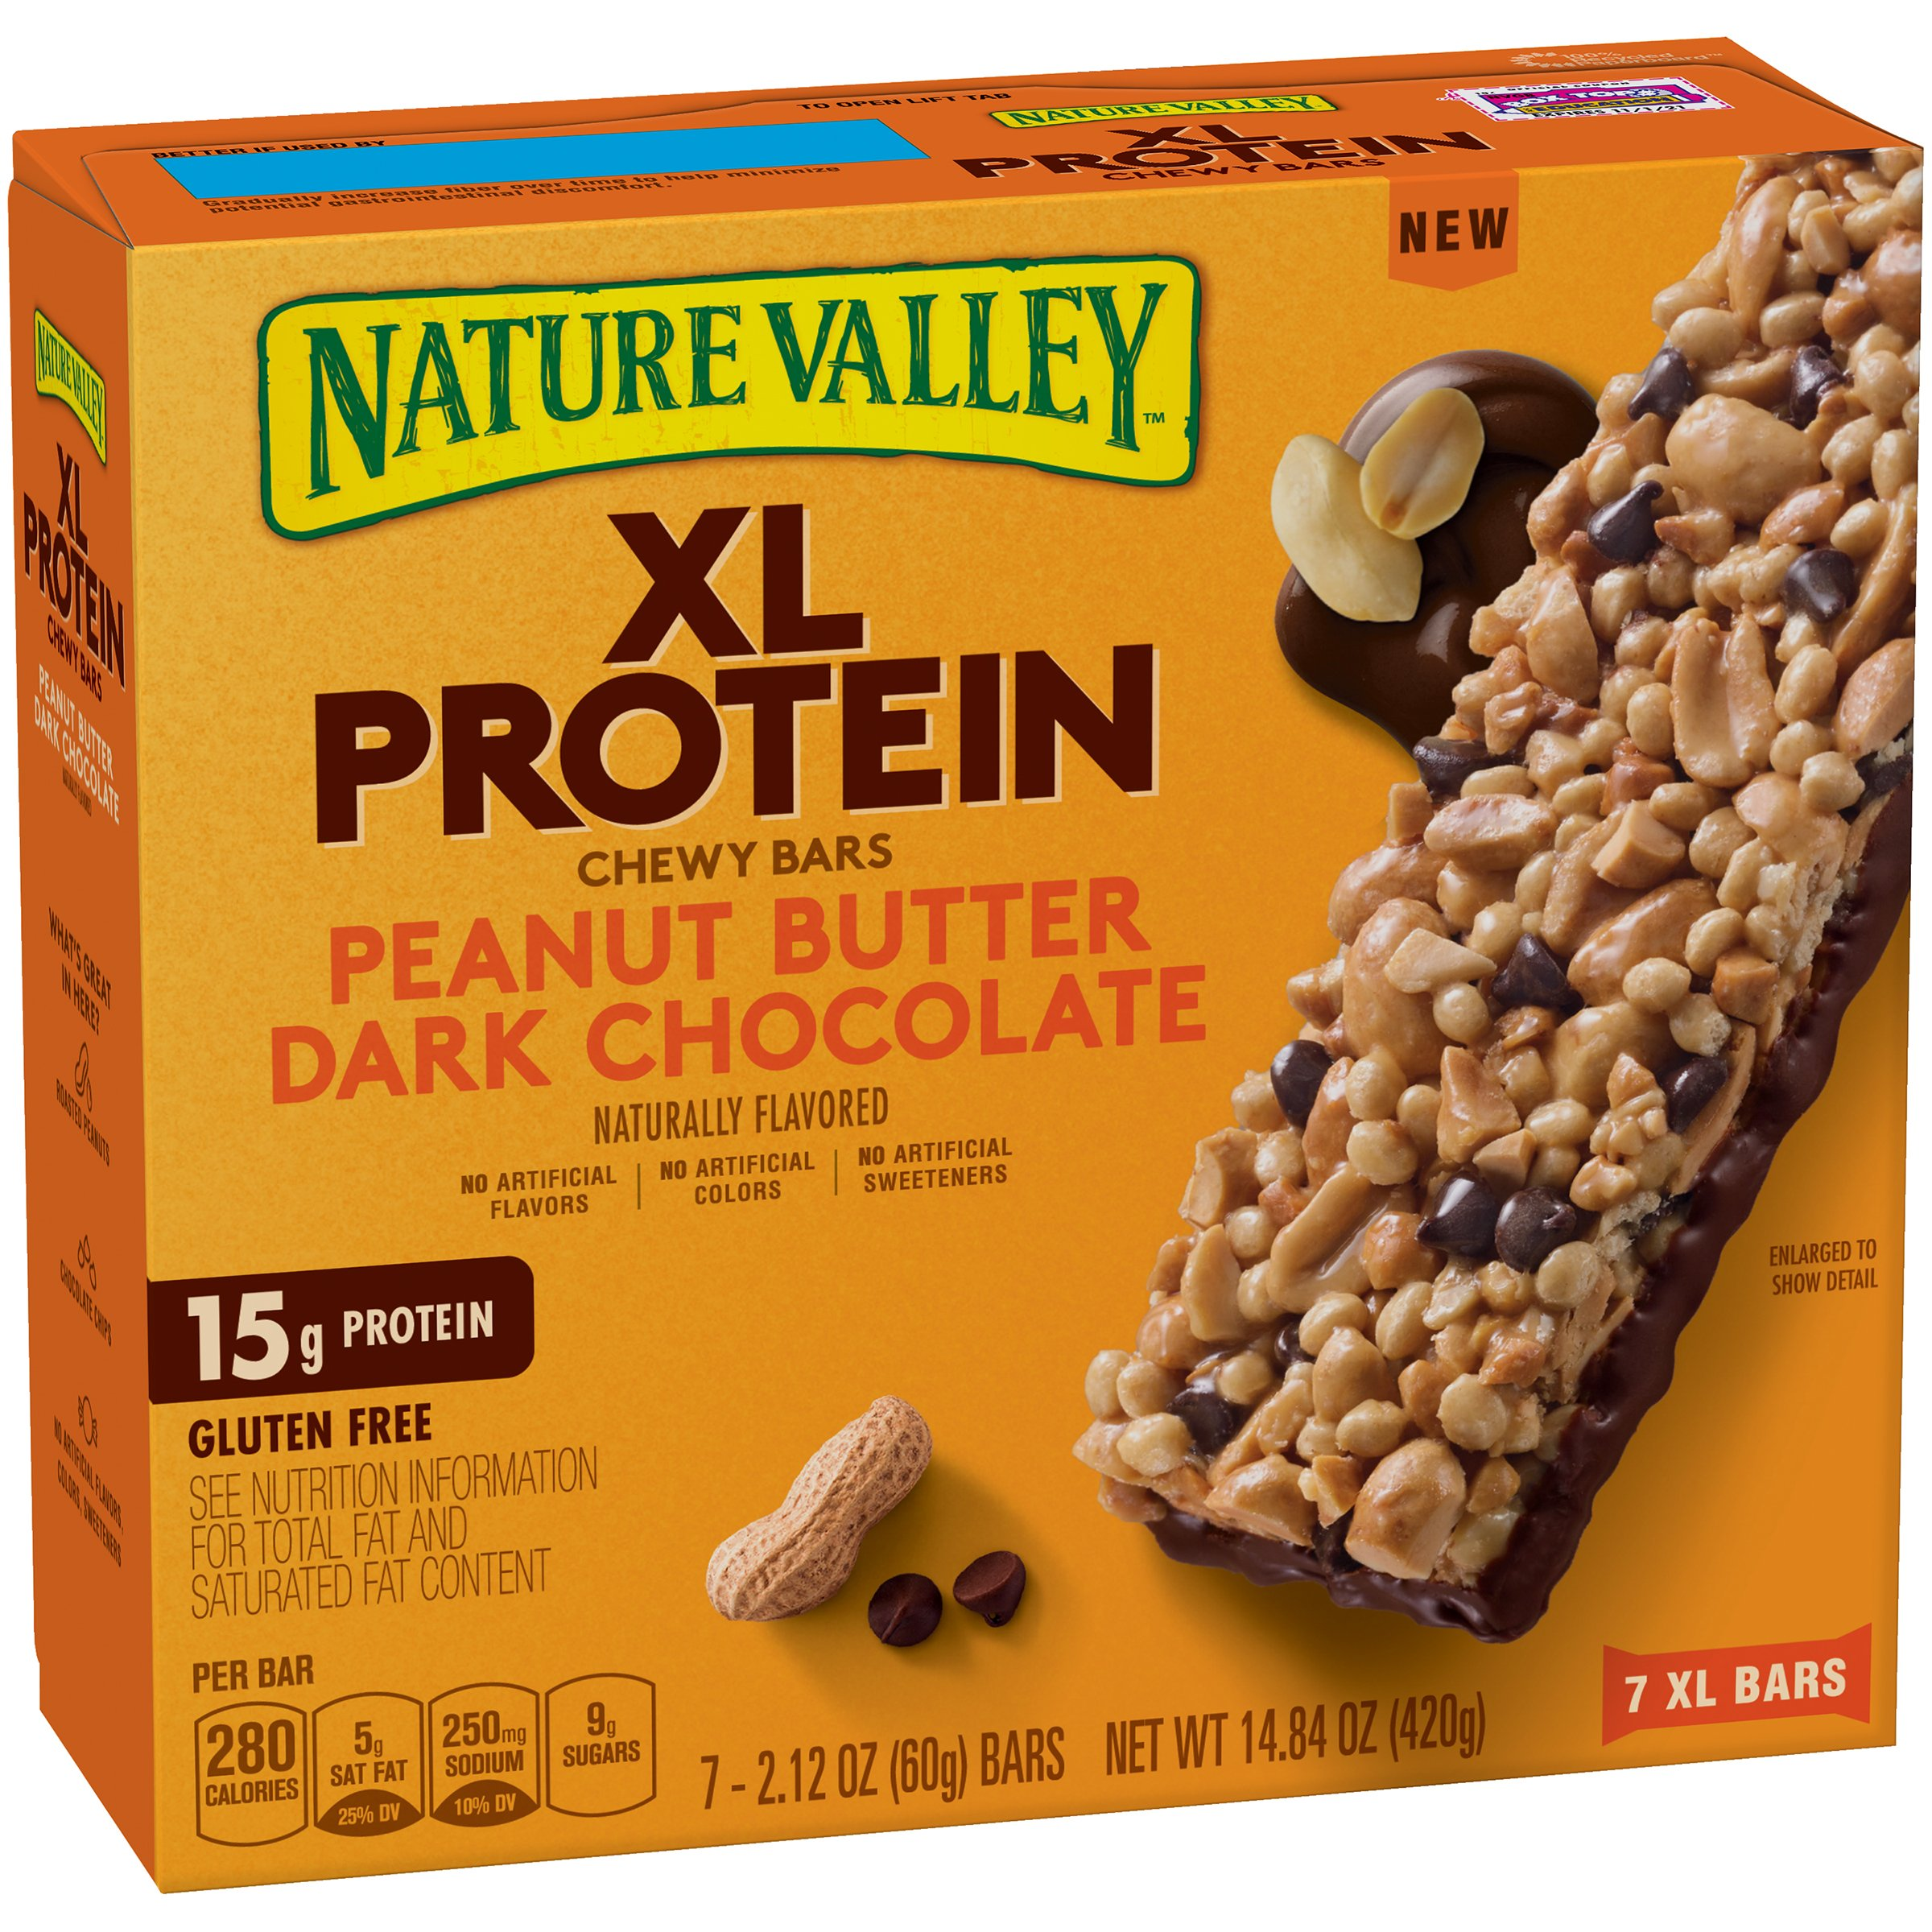 Nature Valley Chewy Granola Bar, XL Protein, Gluten Free, Peanut Butter Dark Chocolate, 7 Bars, 2.12 oz (Pack of 6) by Nature Valley